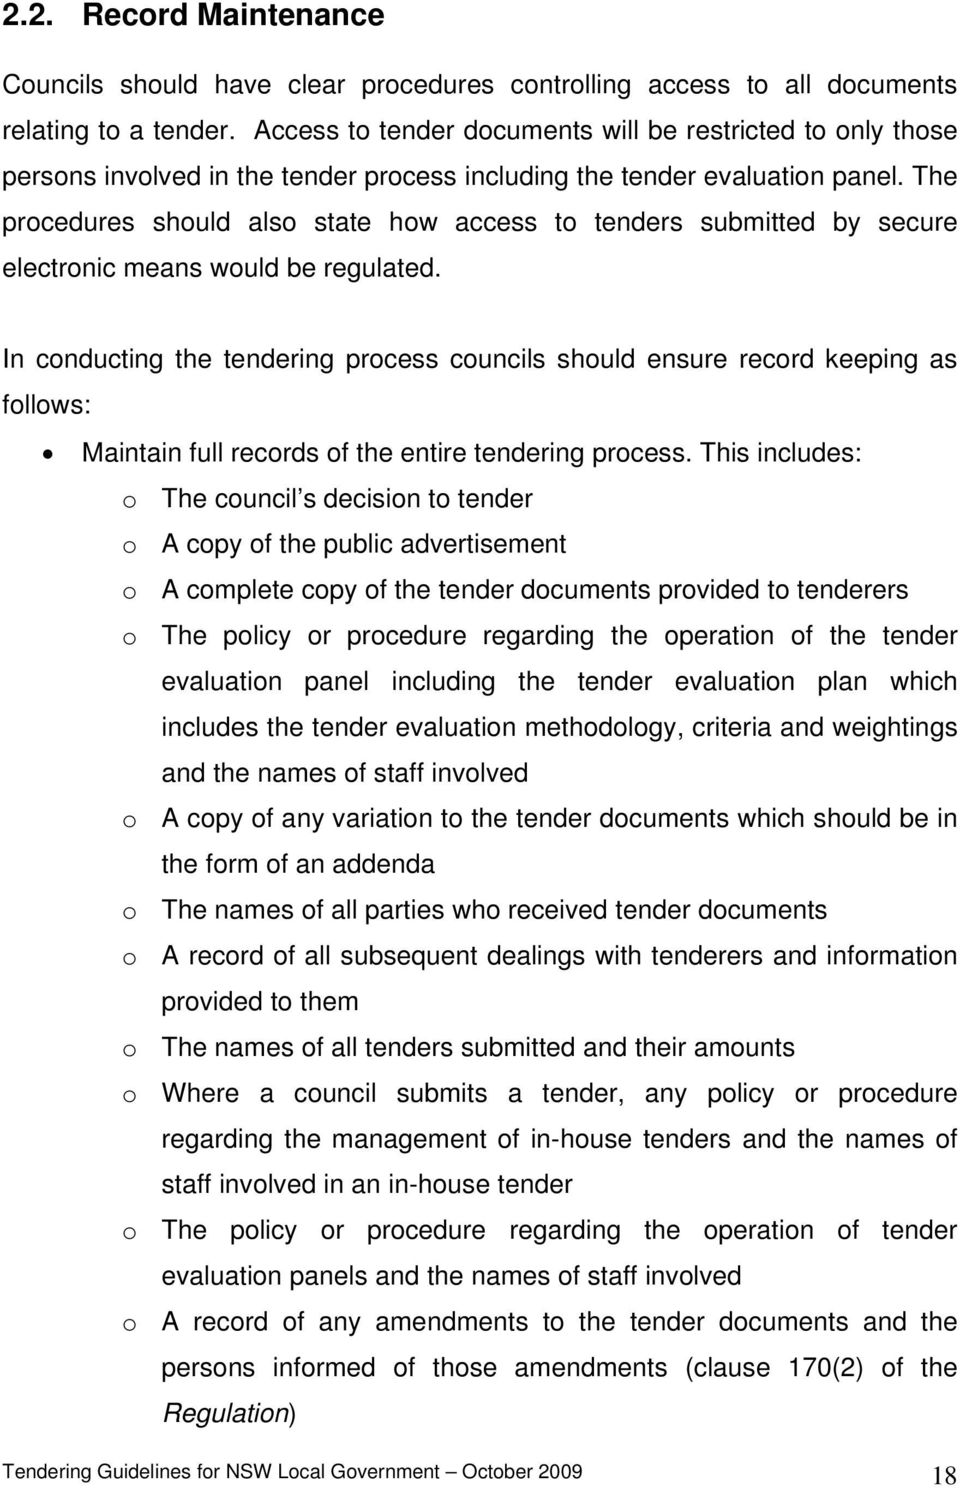 The procedures should also state how access to tenders submitted by secure electronic means would be regulated.